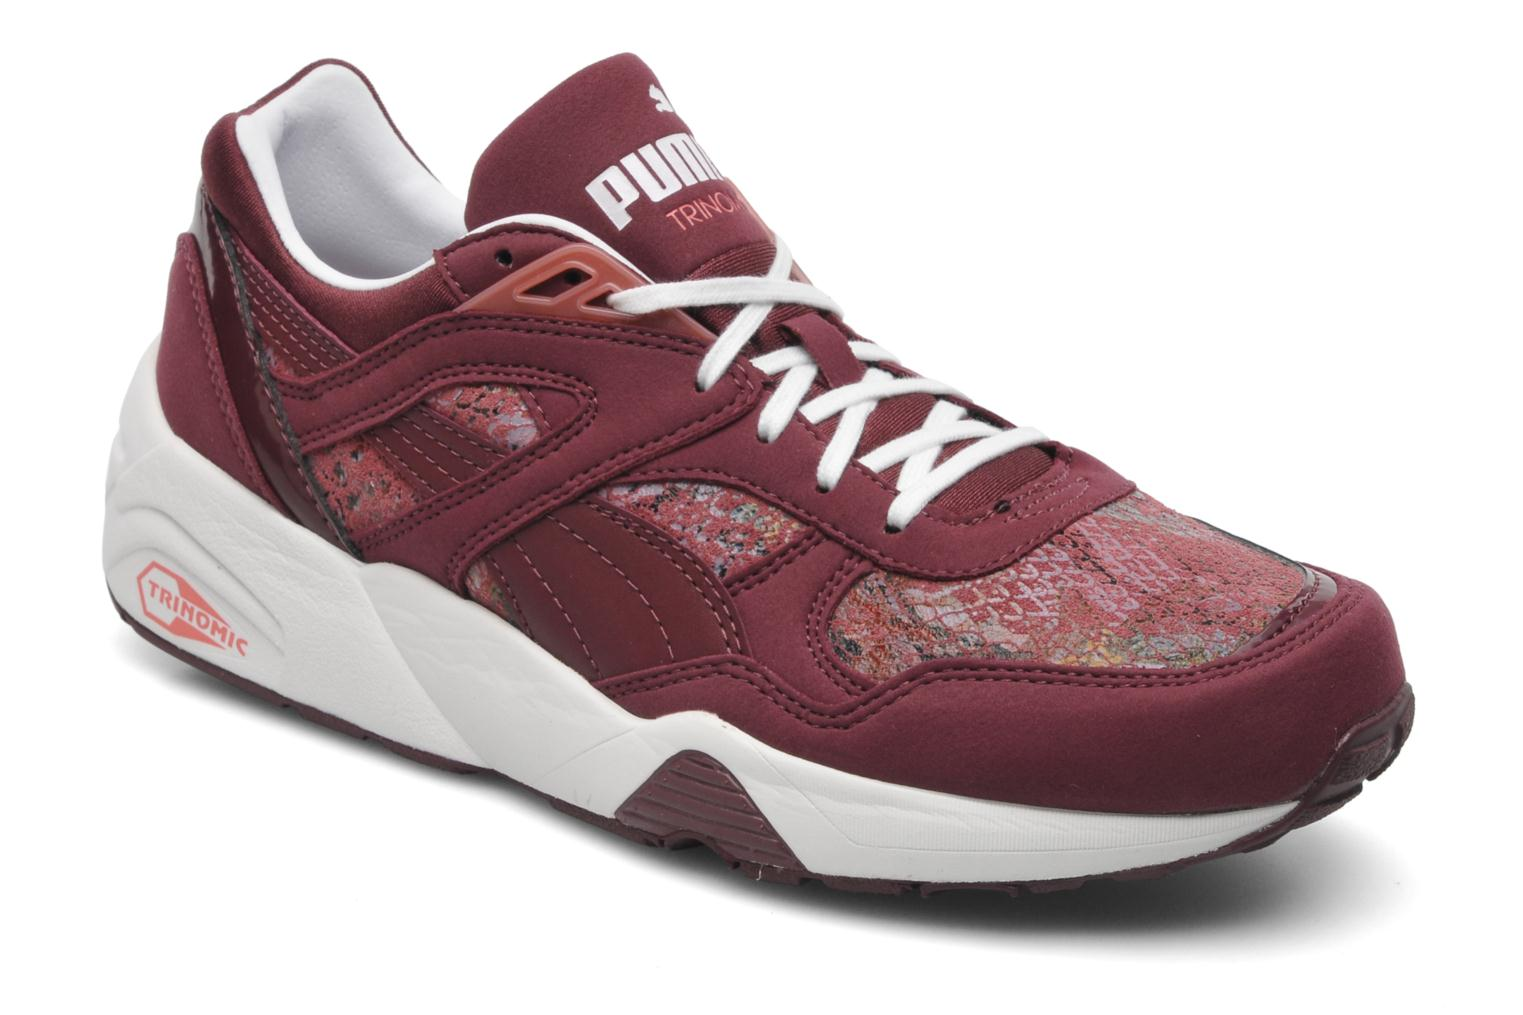 Puma Trinomic R698 Hyper Wn's Sport shoes in Burgundy at Sarenza.co.uk (193996)